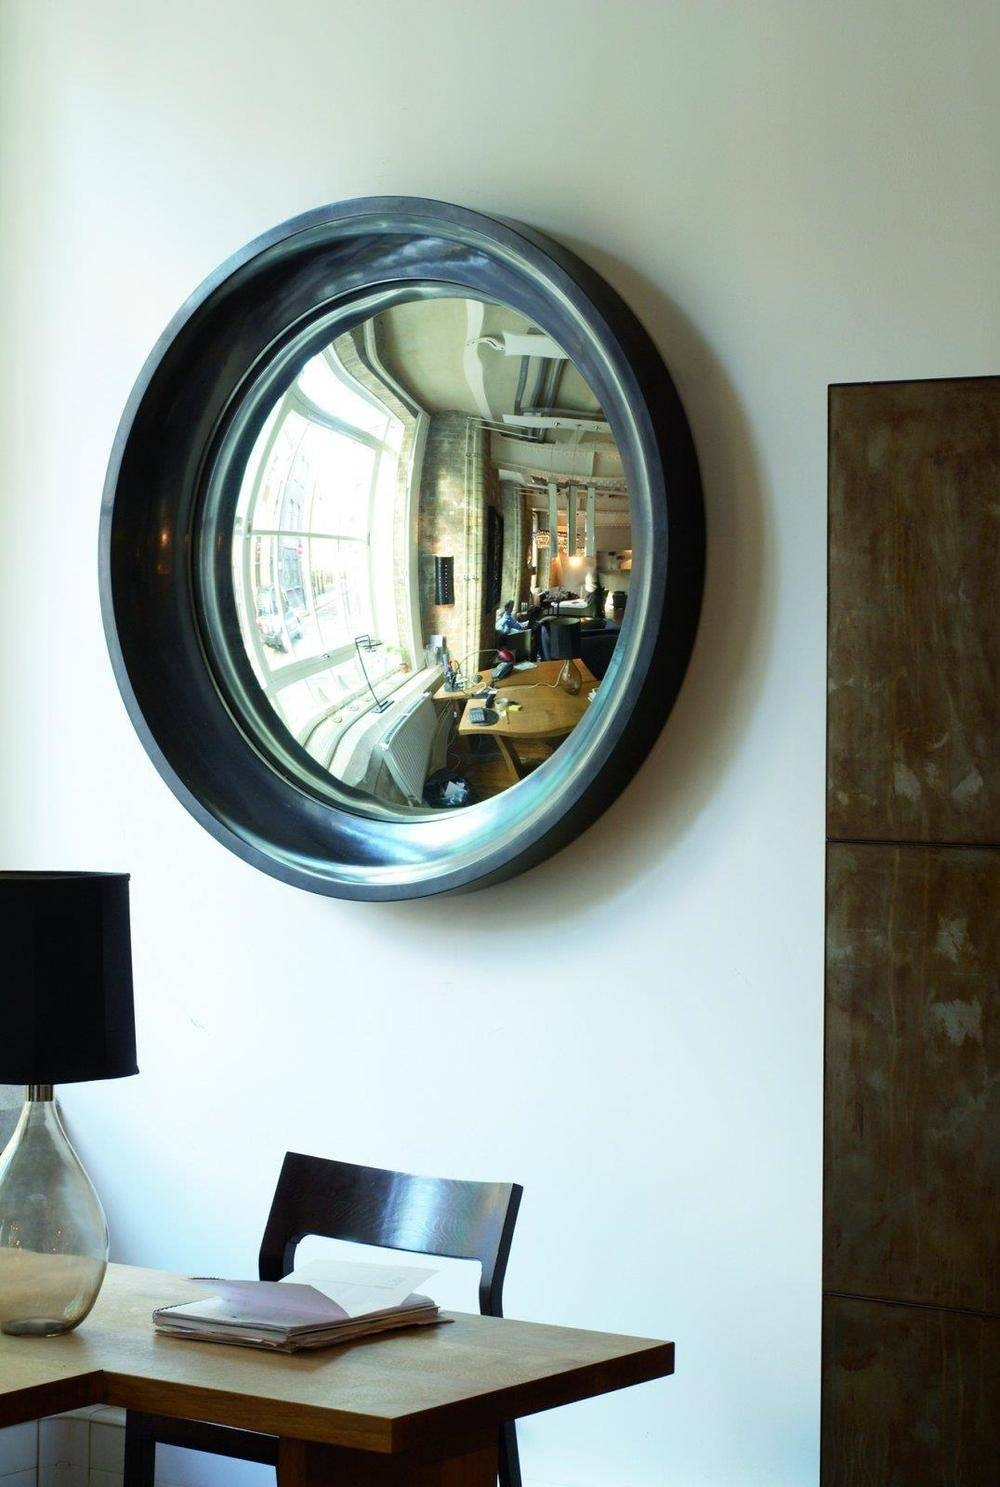 15 Interiors Turned Abstract Wall Arta Convex Mirror — Designed Within Concave Wall Mirrors (View 1 of 15)